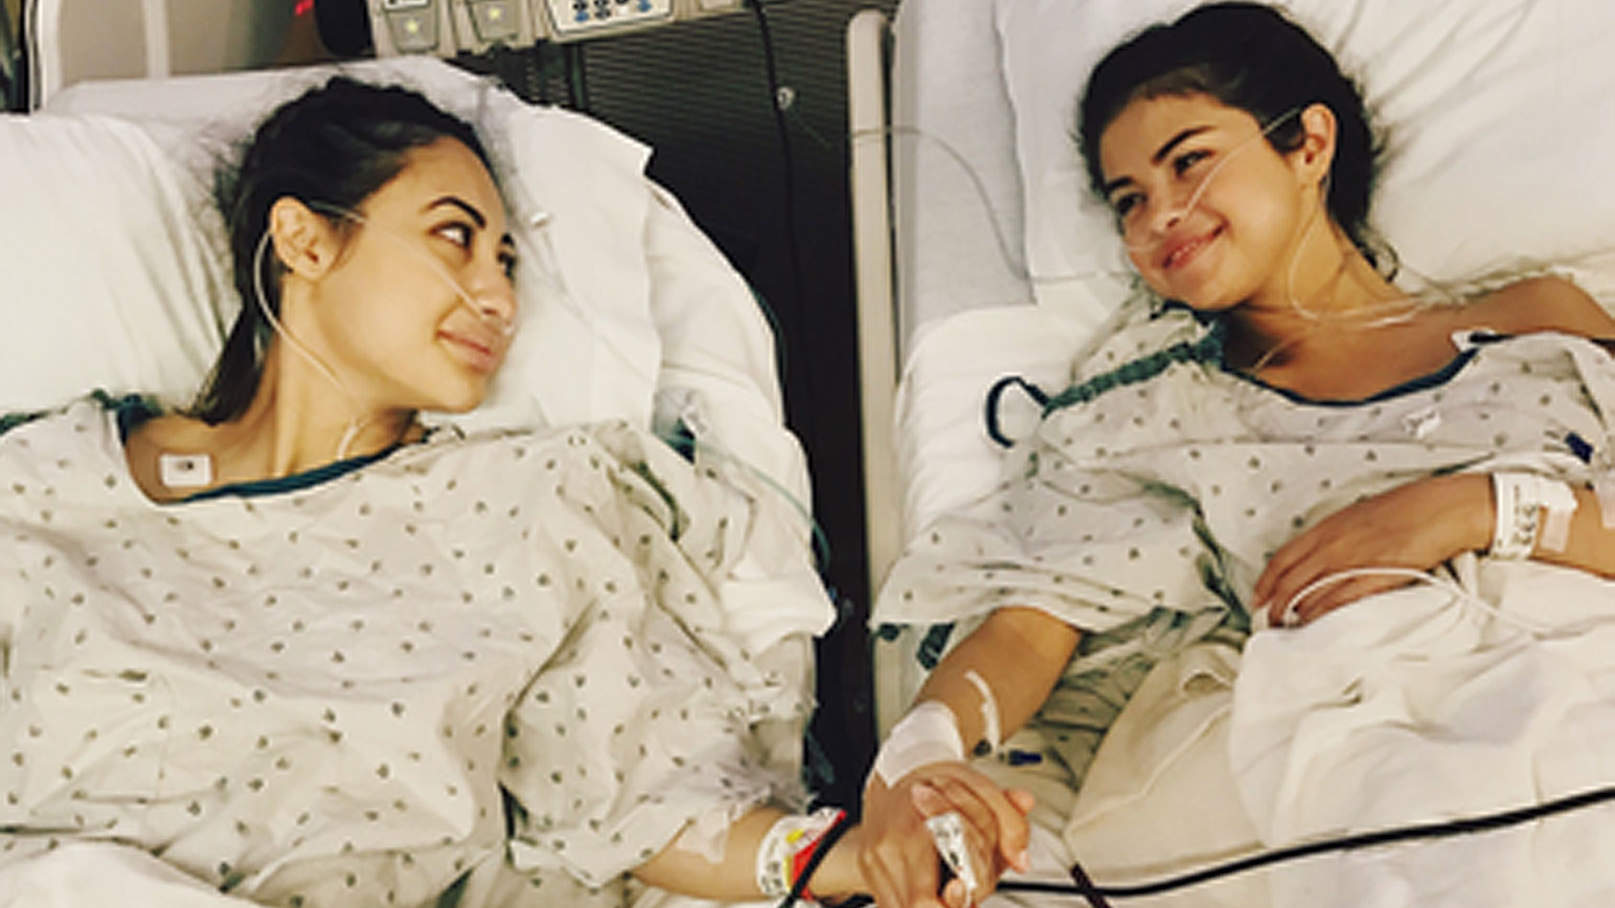 Selena Gomez Reveals Her Best Friend Gave Her a Kidney